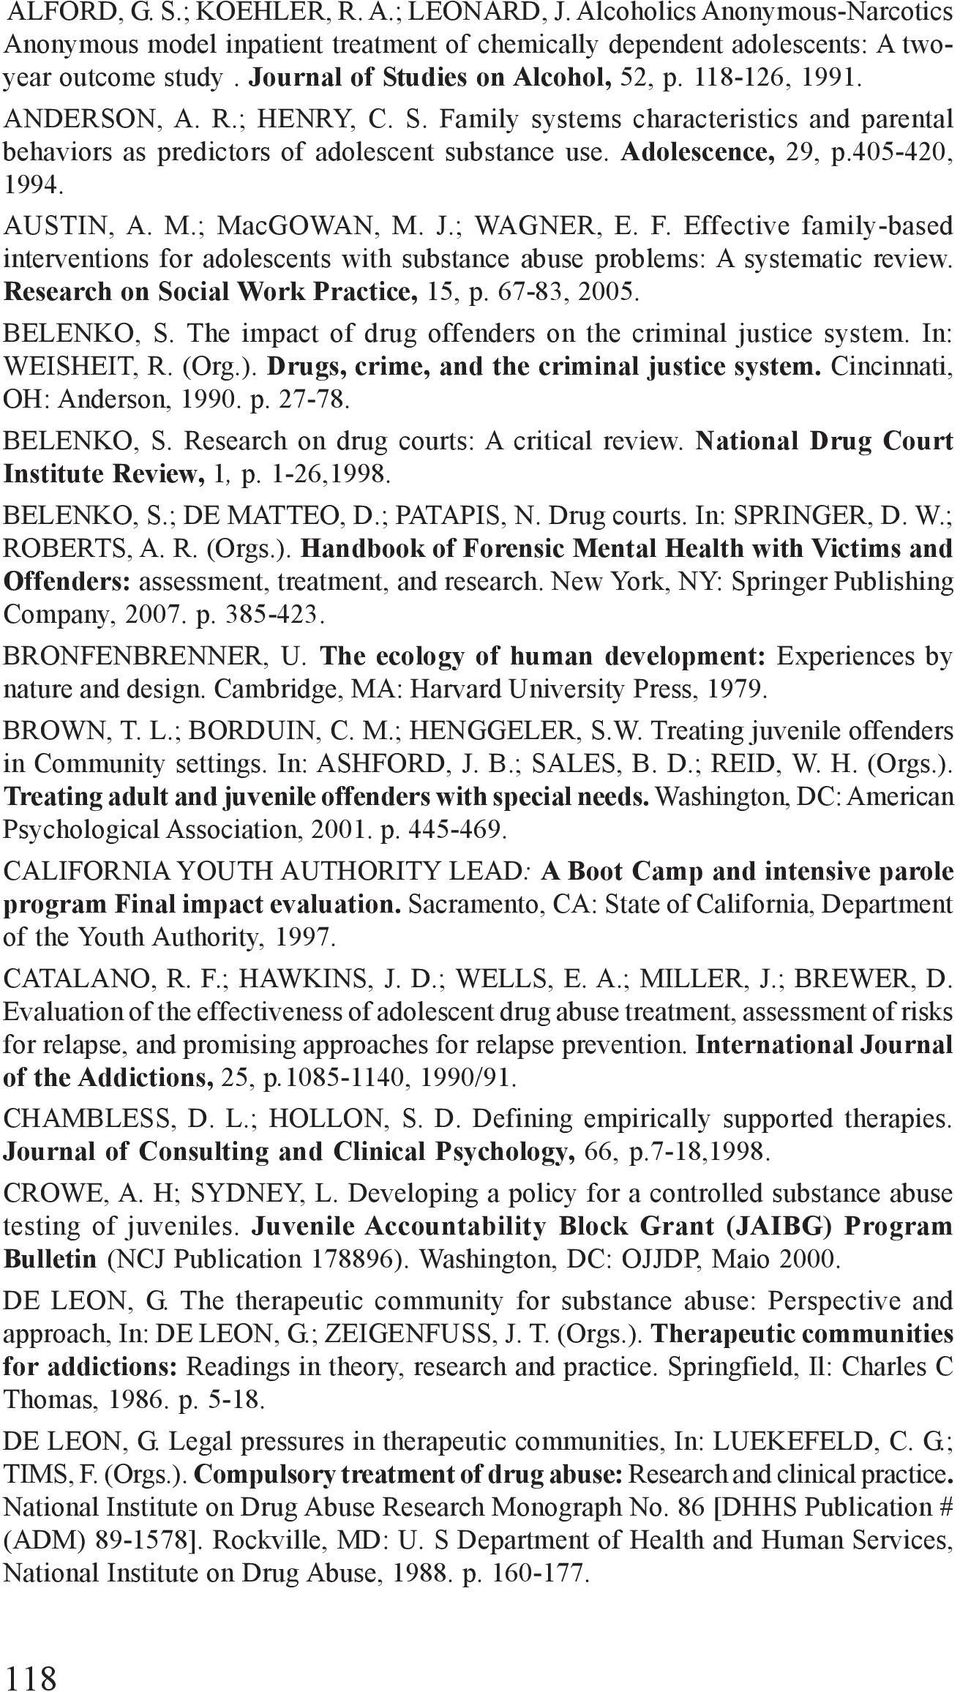 405-420, 1994. AUSTIN, A. M.; MacGOWAN, M. J.; WAGNER, E. F. Effective family-based interventions for adolescents with substance abuse problems: A systematic review.